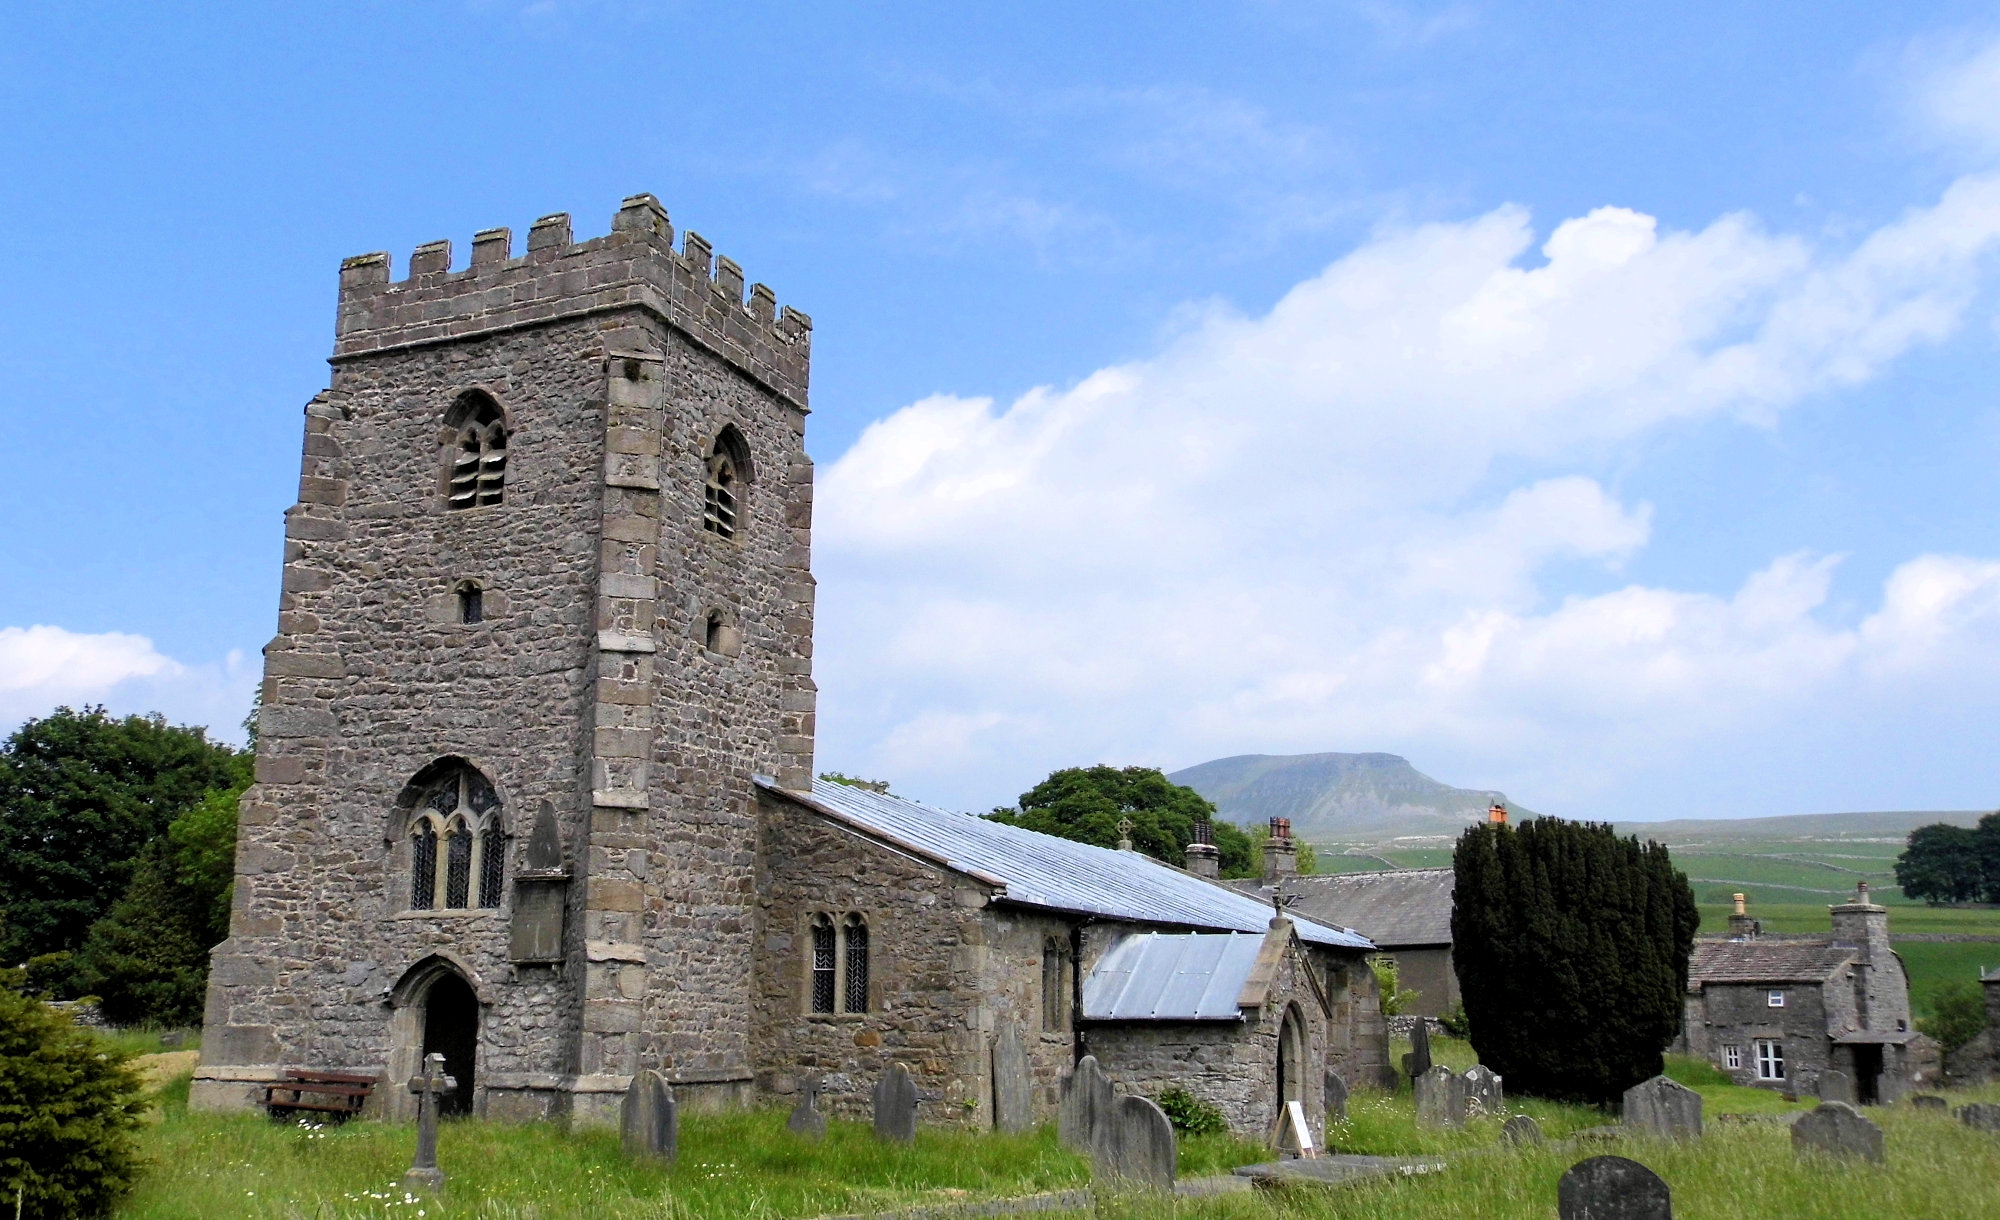 Photo of the view from the churchyard in Horton in Ribblesdale towards Pen-y-Ghent - photo from wikimedia by Steve Kraken